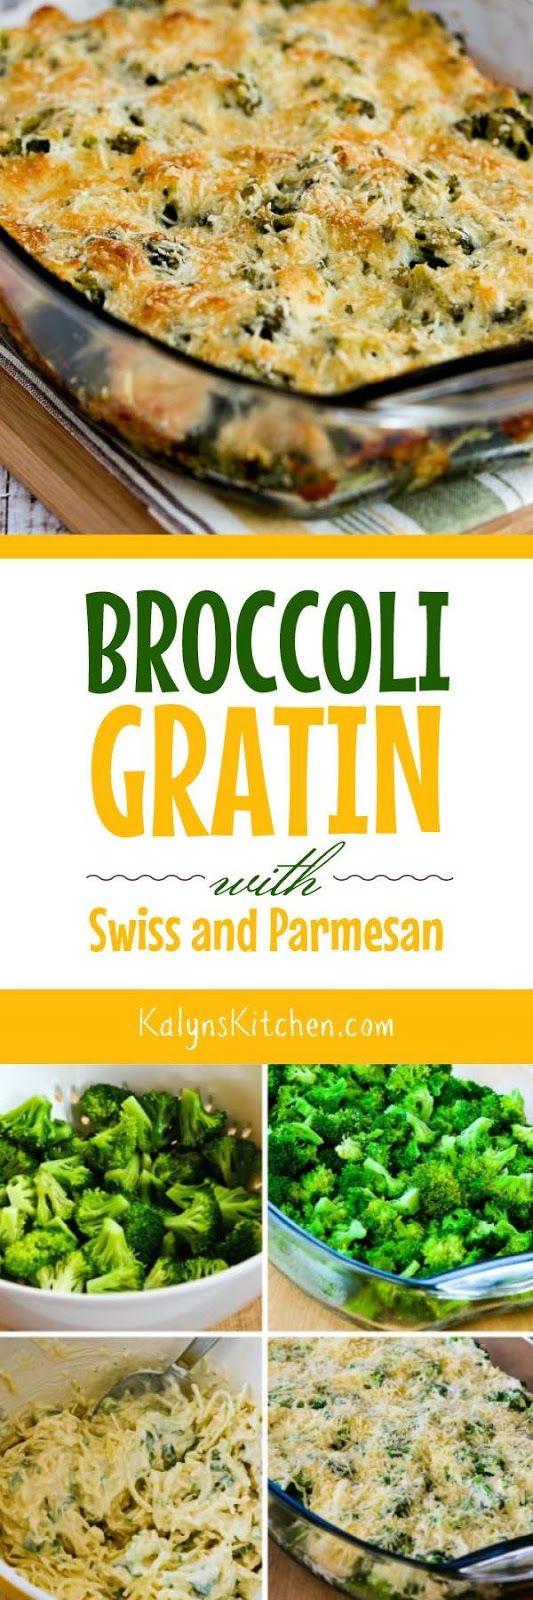 Broccoli Gratin with Swiss and Parmesan is a perfect low-carb and gluten-free side dish that's perfect for Thanksgiving or any special meal. [found on KalynsKitchen.com] More